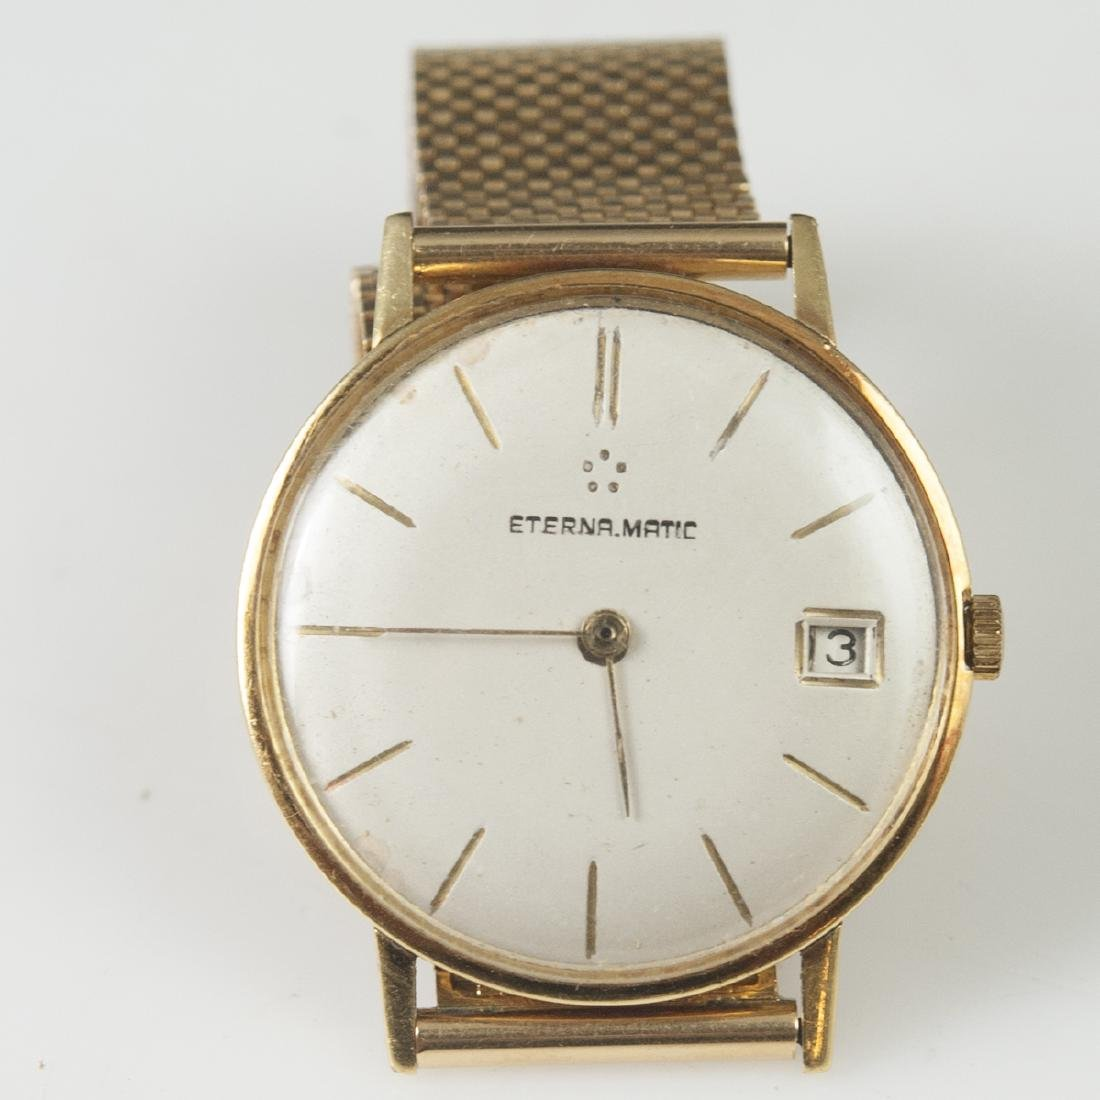 Eterna Matic 18kt Yellow Gold Watch